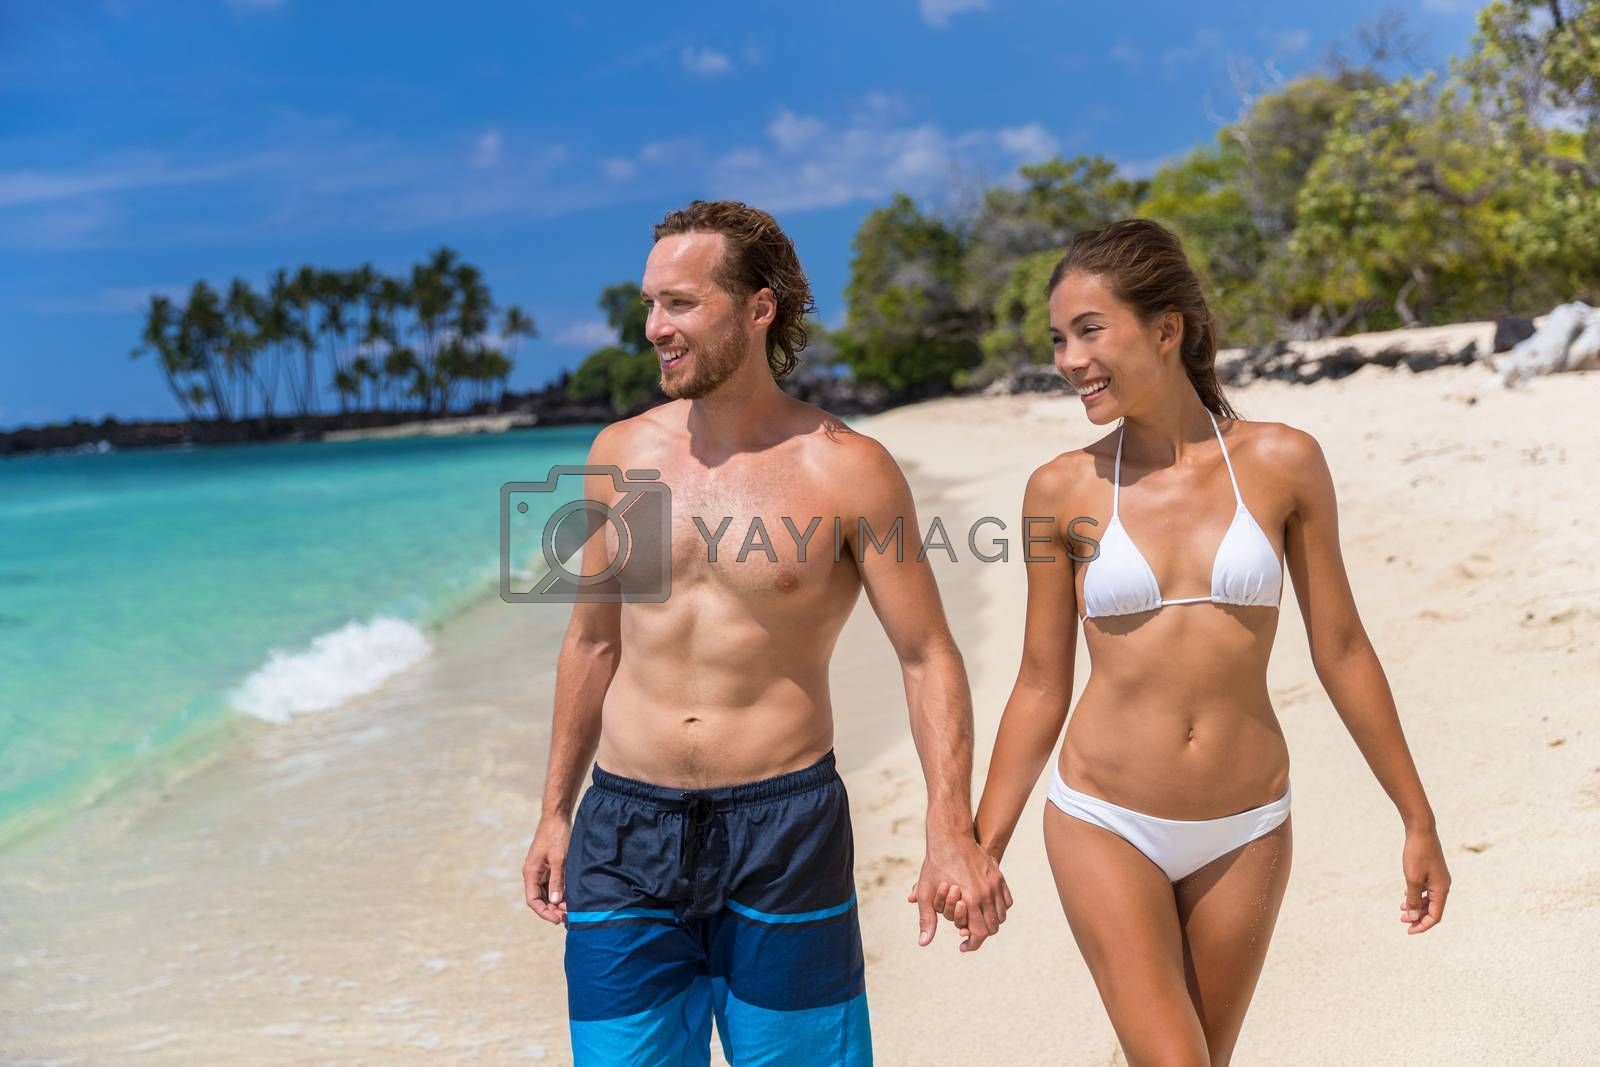 Beach bikini couple enjoying summer vacation travel holding hands on Hawaii tropical holidays. Sexy multiracial people with toned abs body.